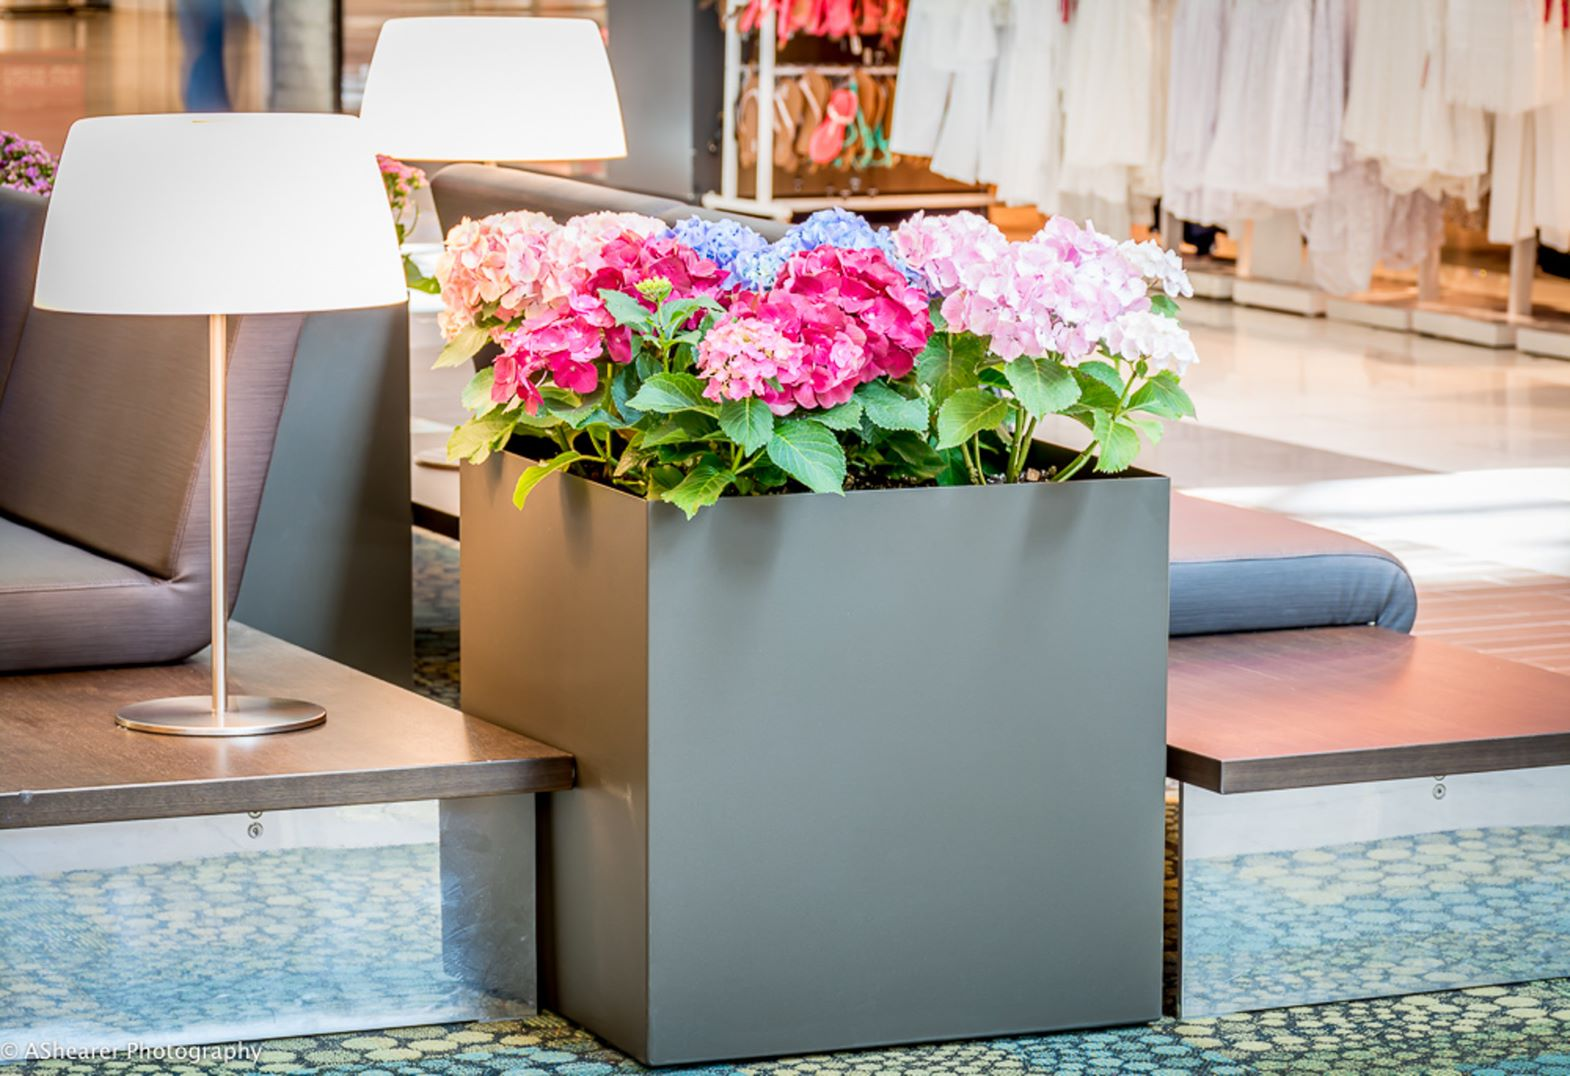 Large square planter with flowers